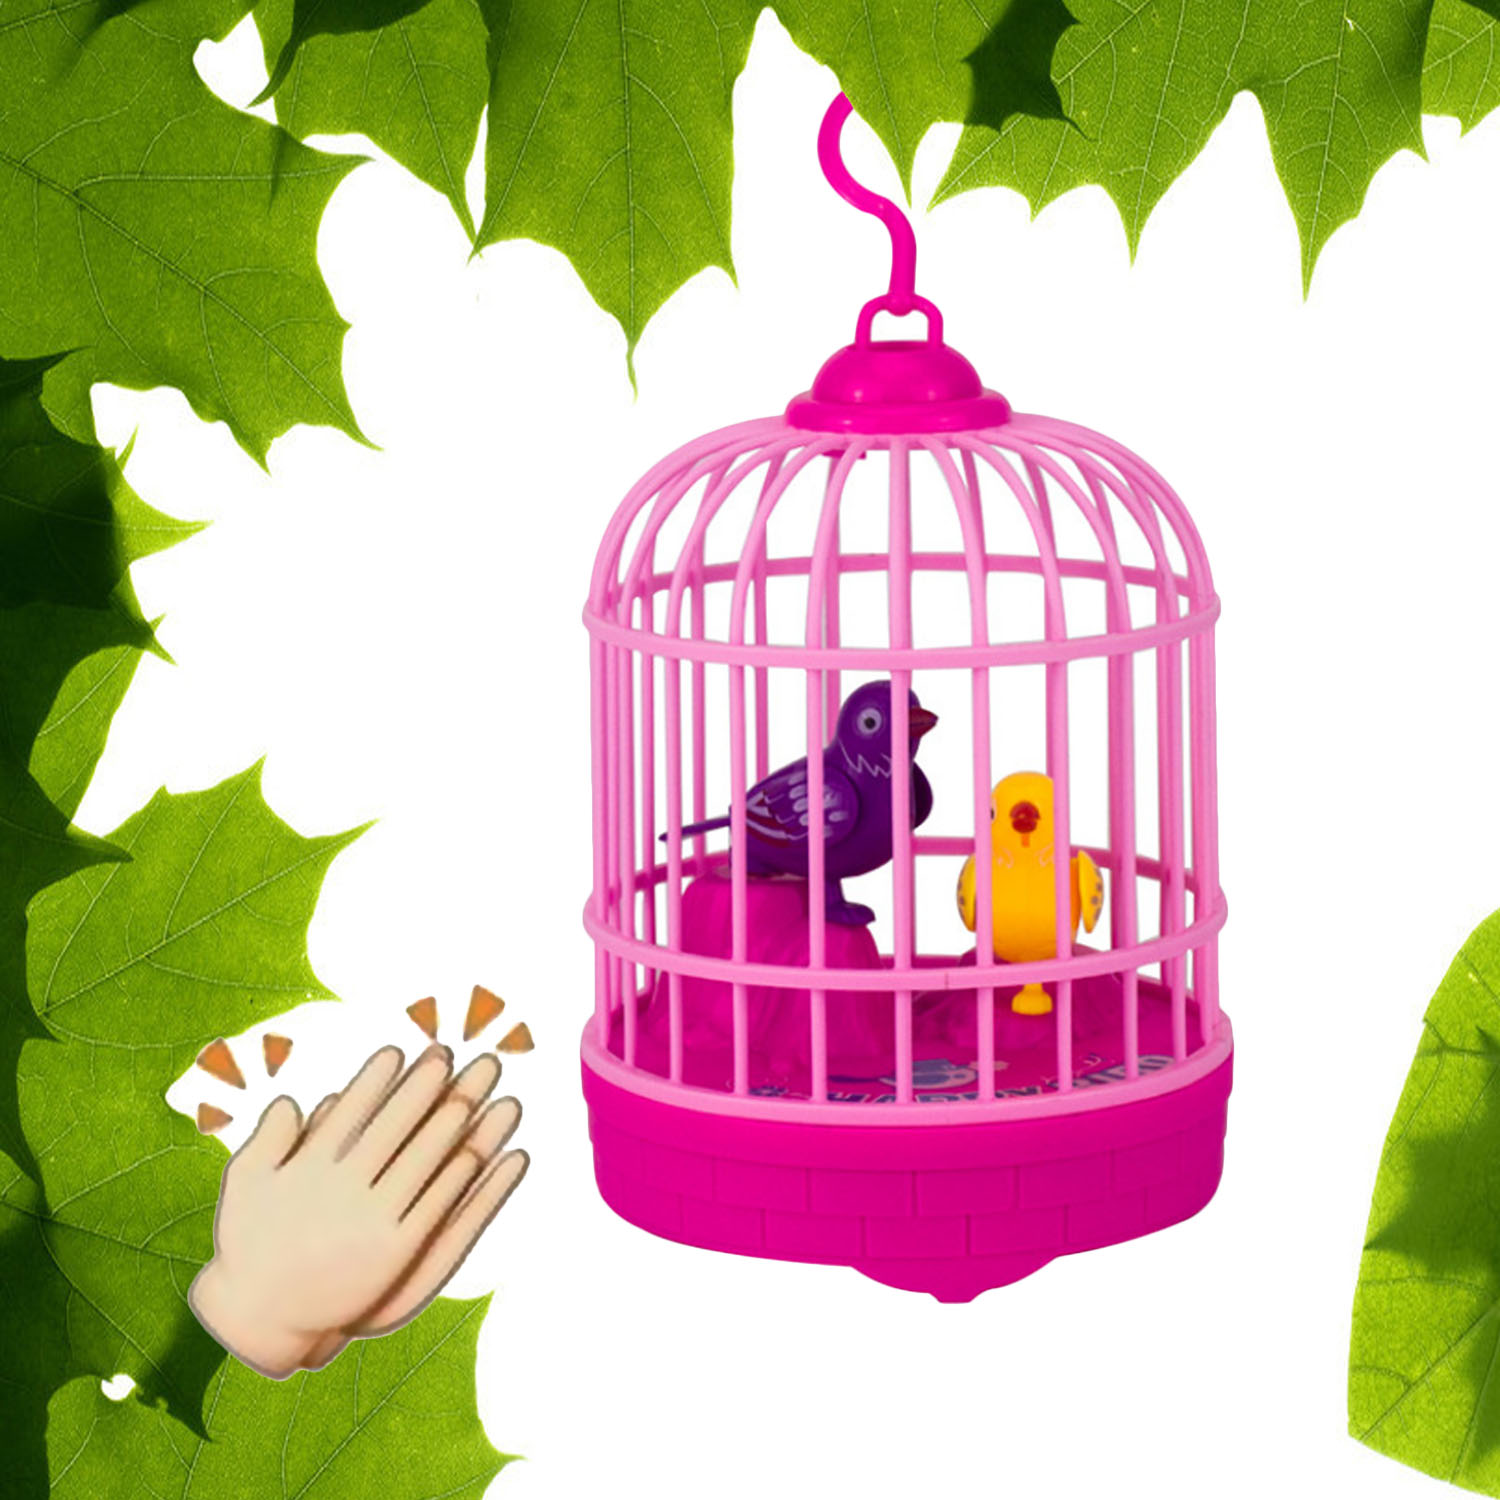 Besegad Sound Voice Control Activate Chirping Singing Simulation Birds With Birdcage Kids Funny Toys Pink